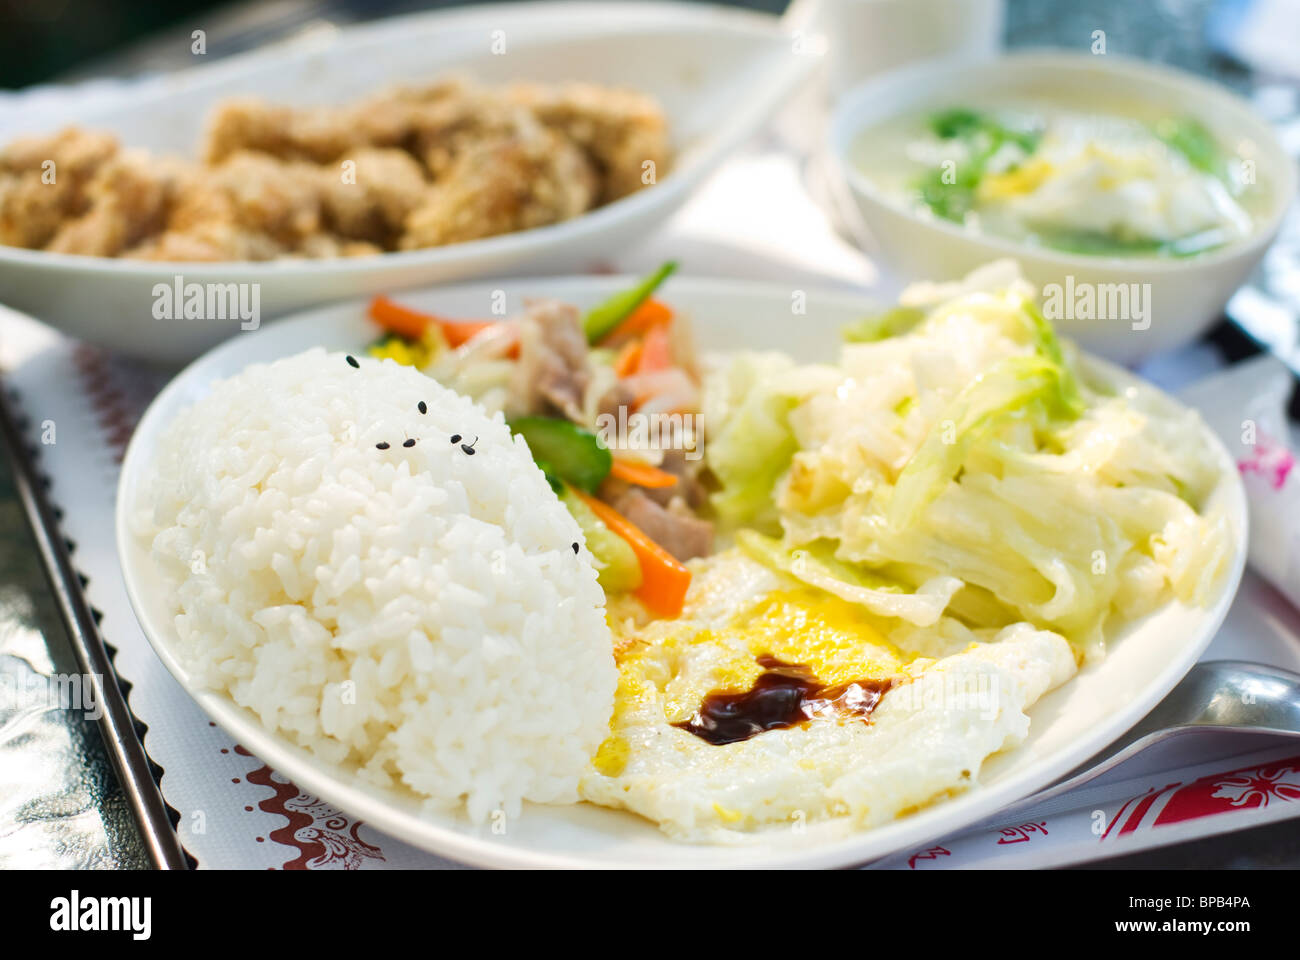 Delicious set of lunch. Chinese food with rice, egg, cabbage vegetable ,fried chicken and soup on the table. Stock Photo